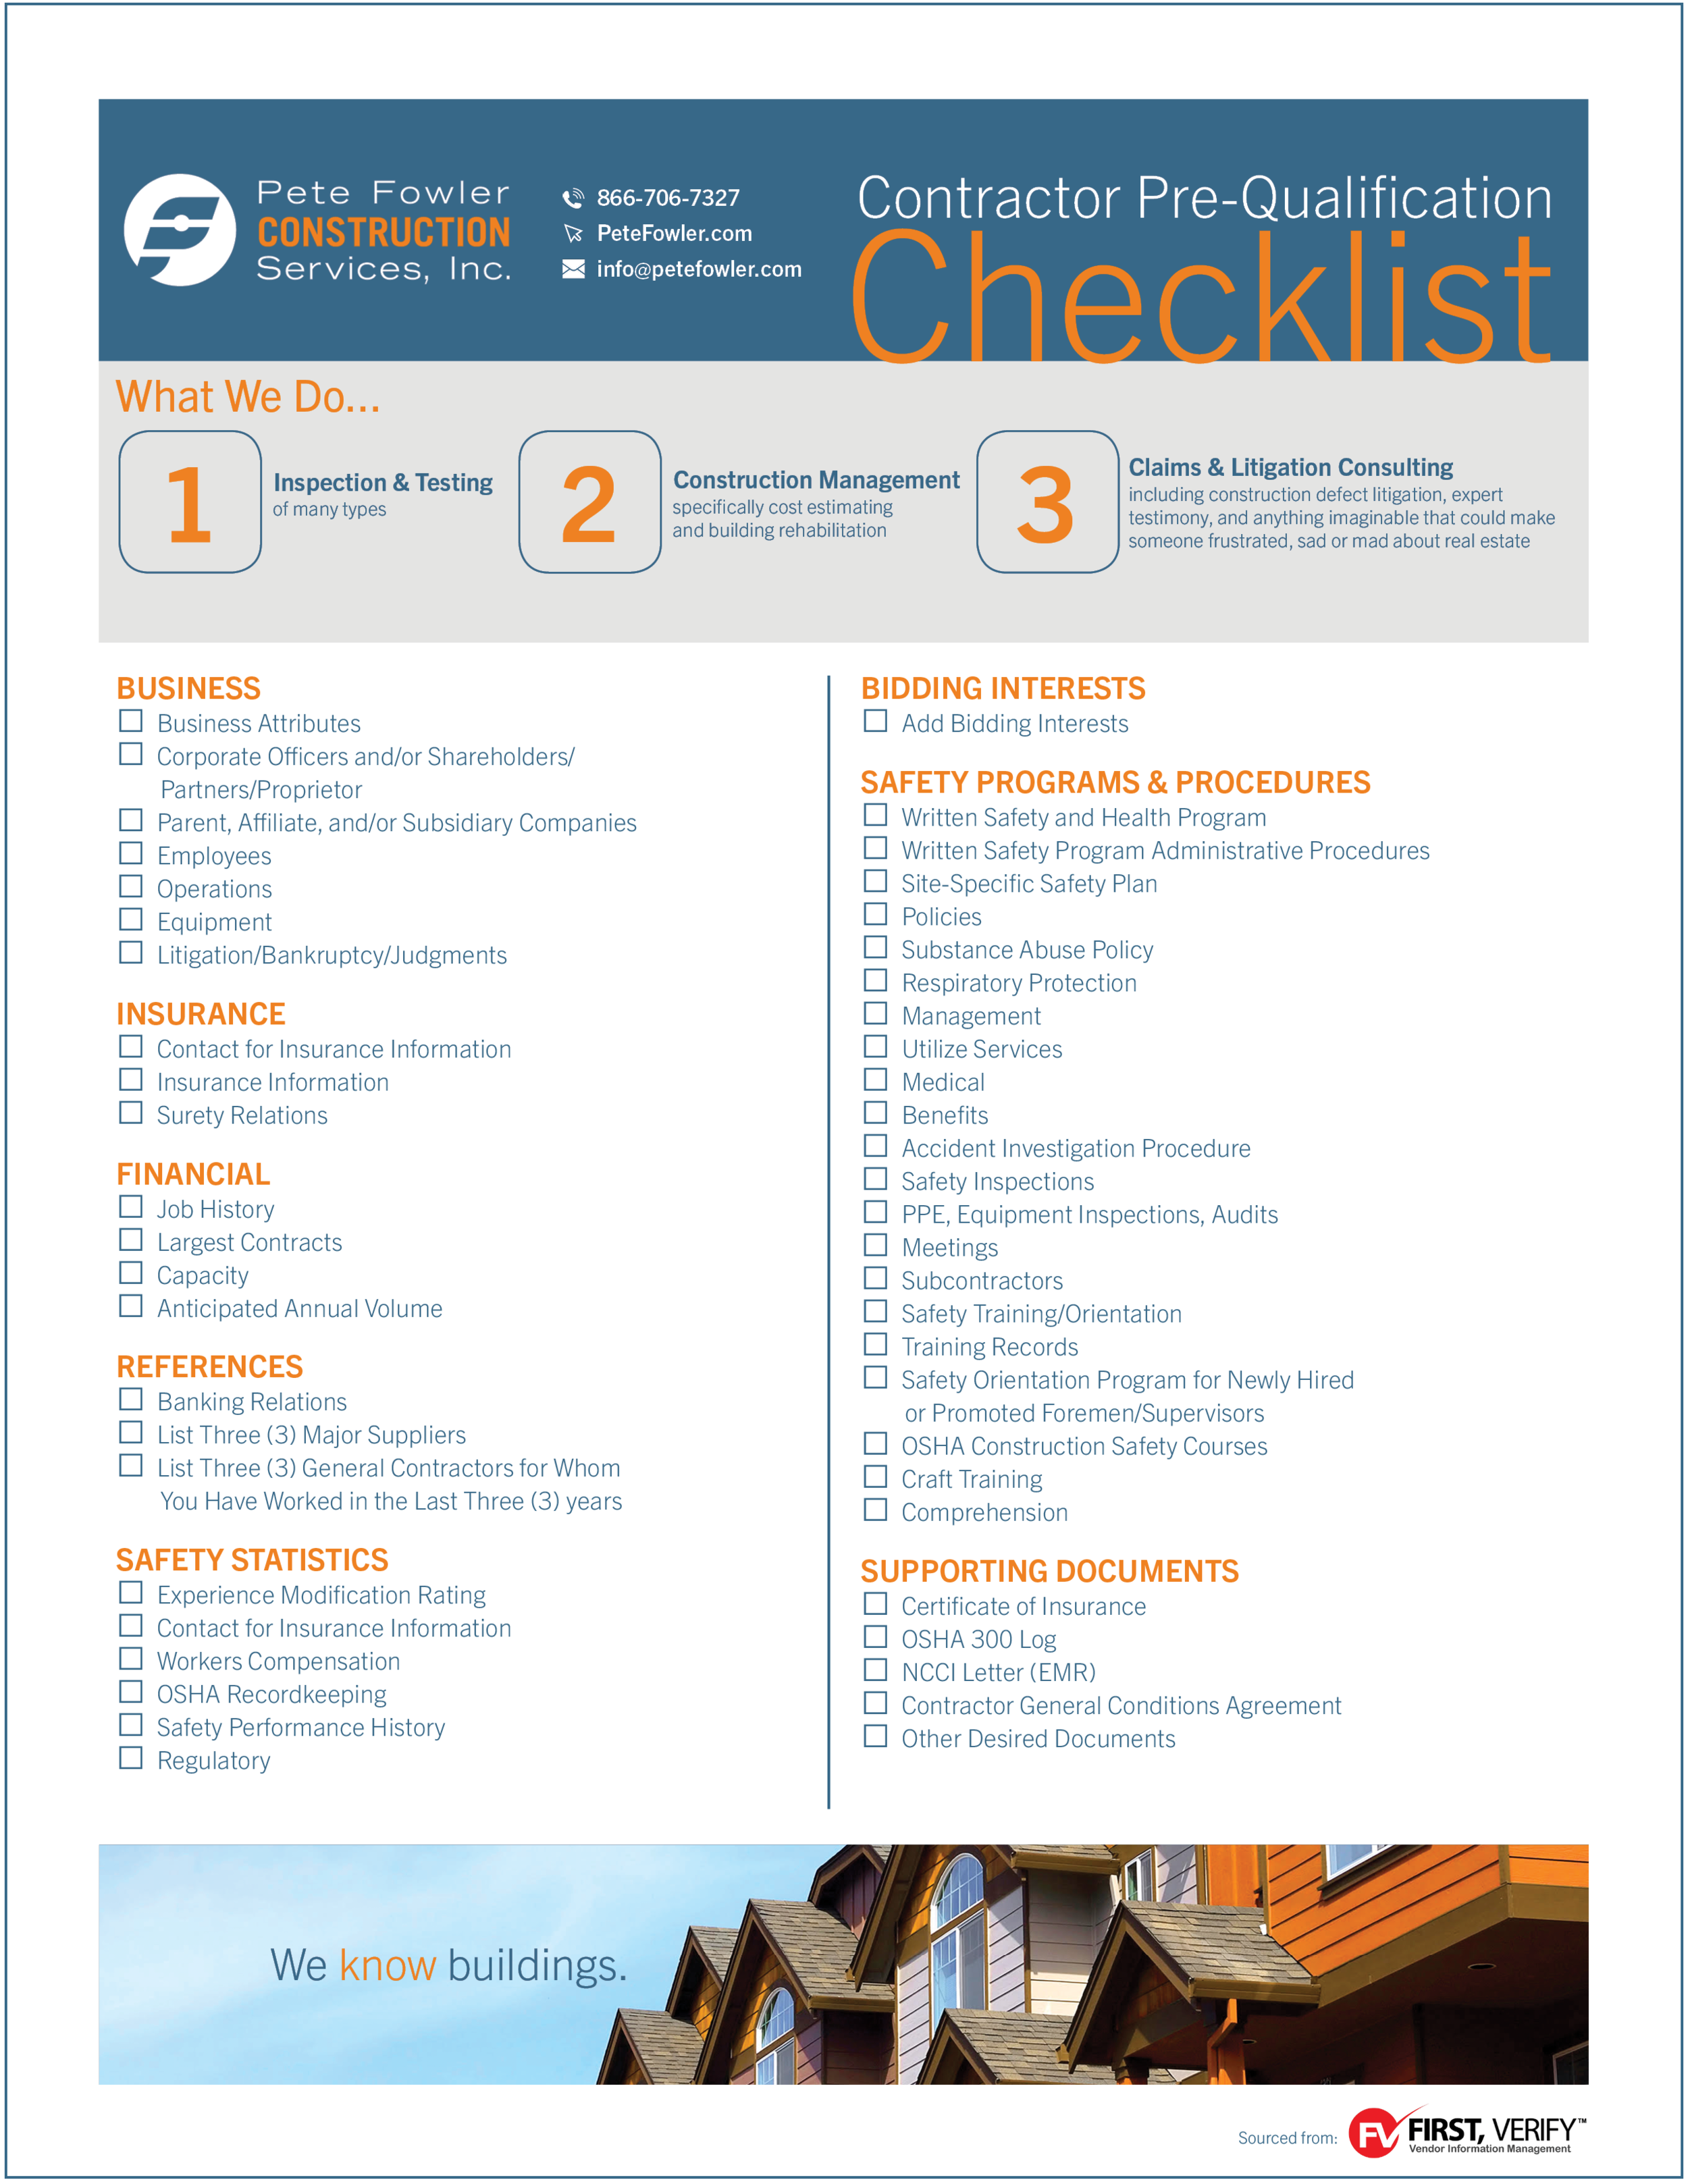 checklist2.png